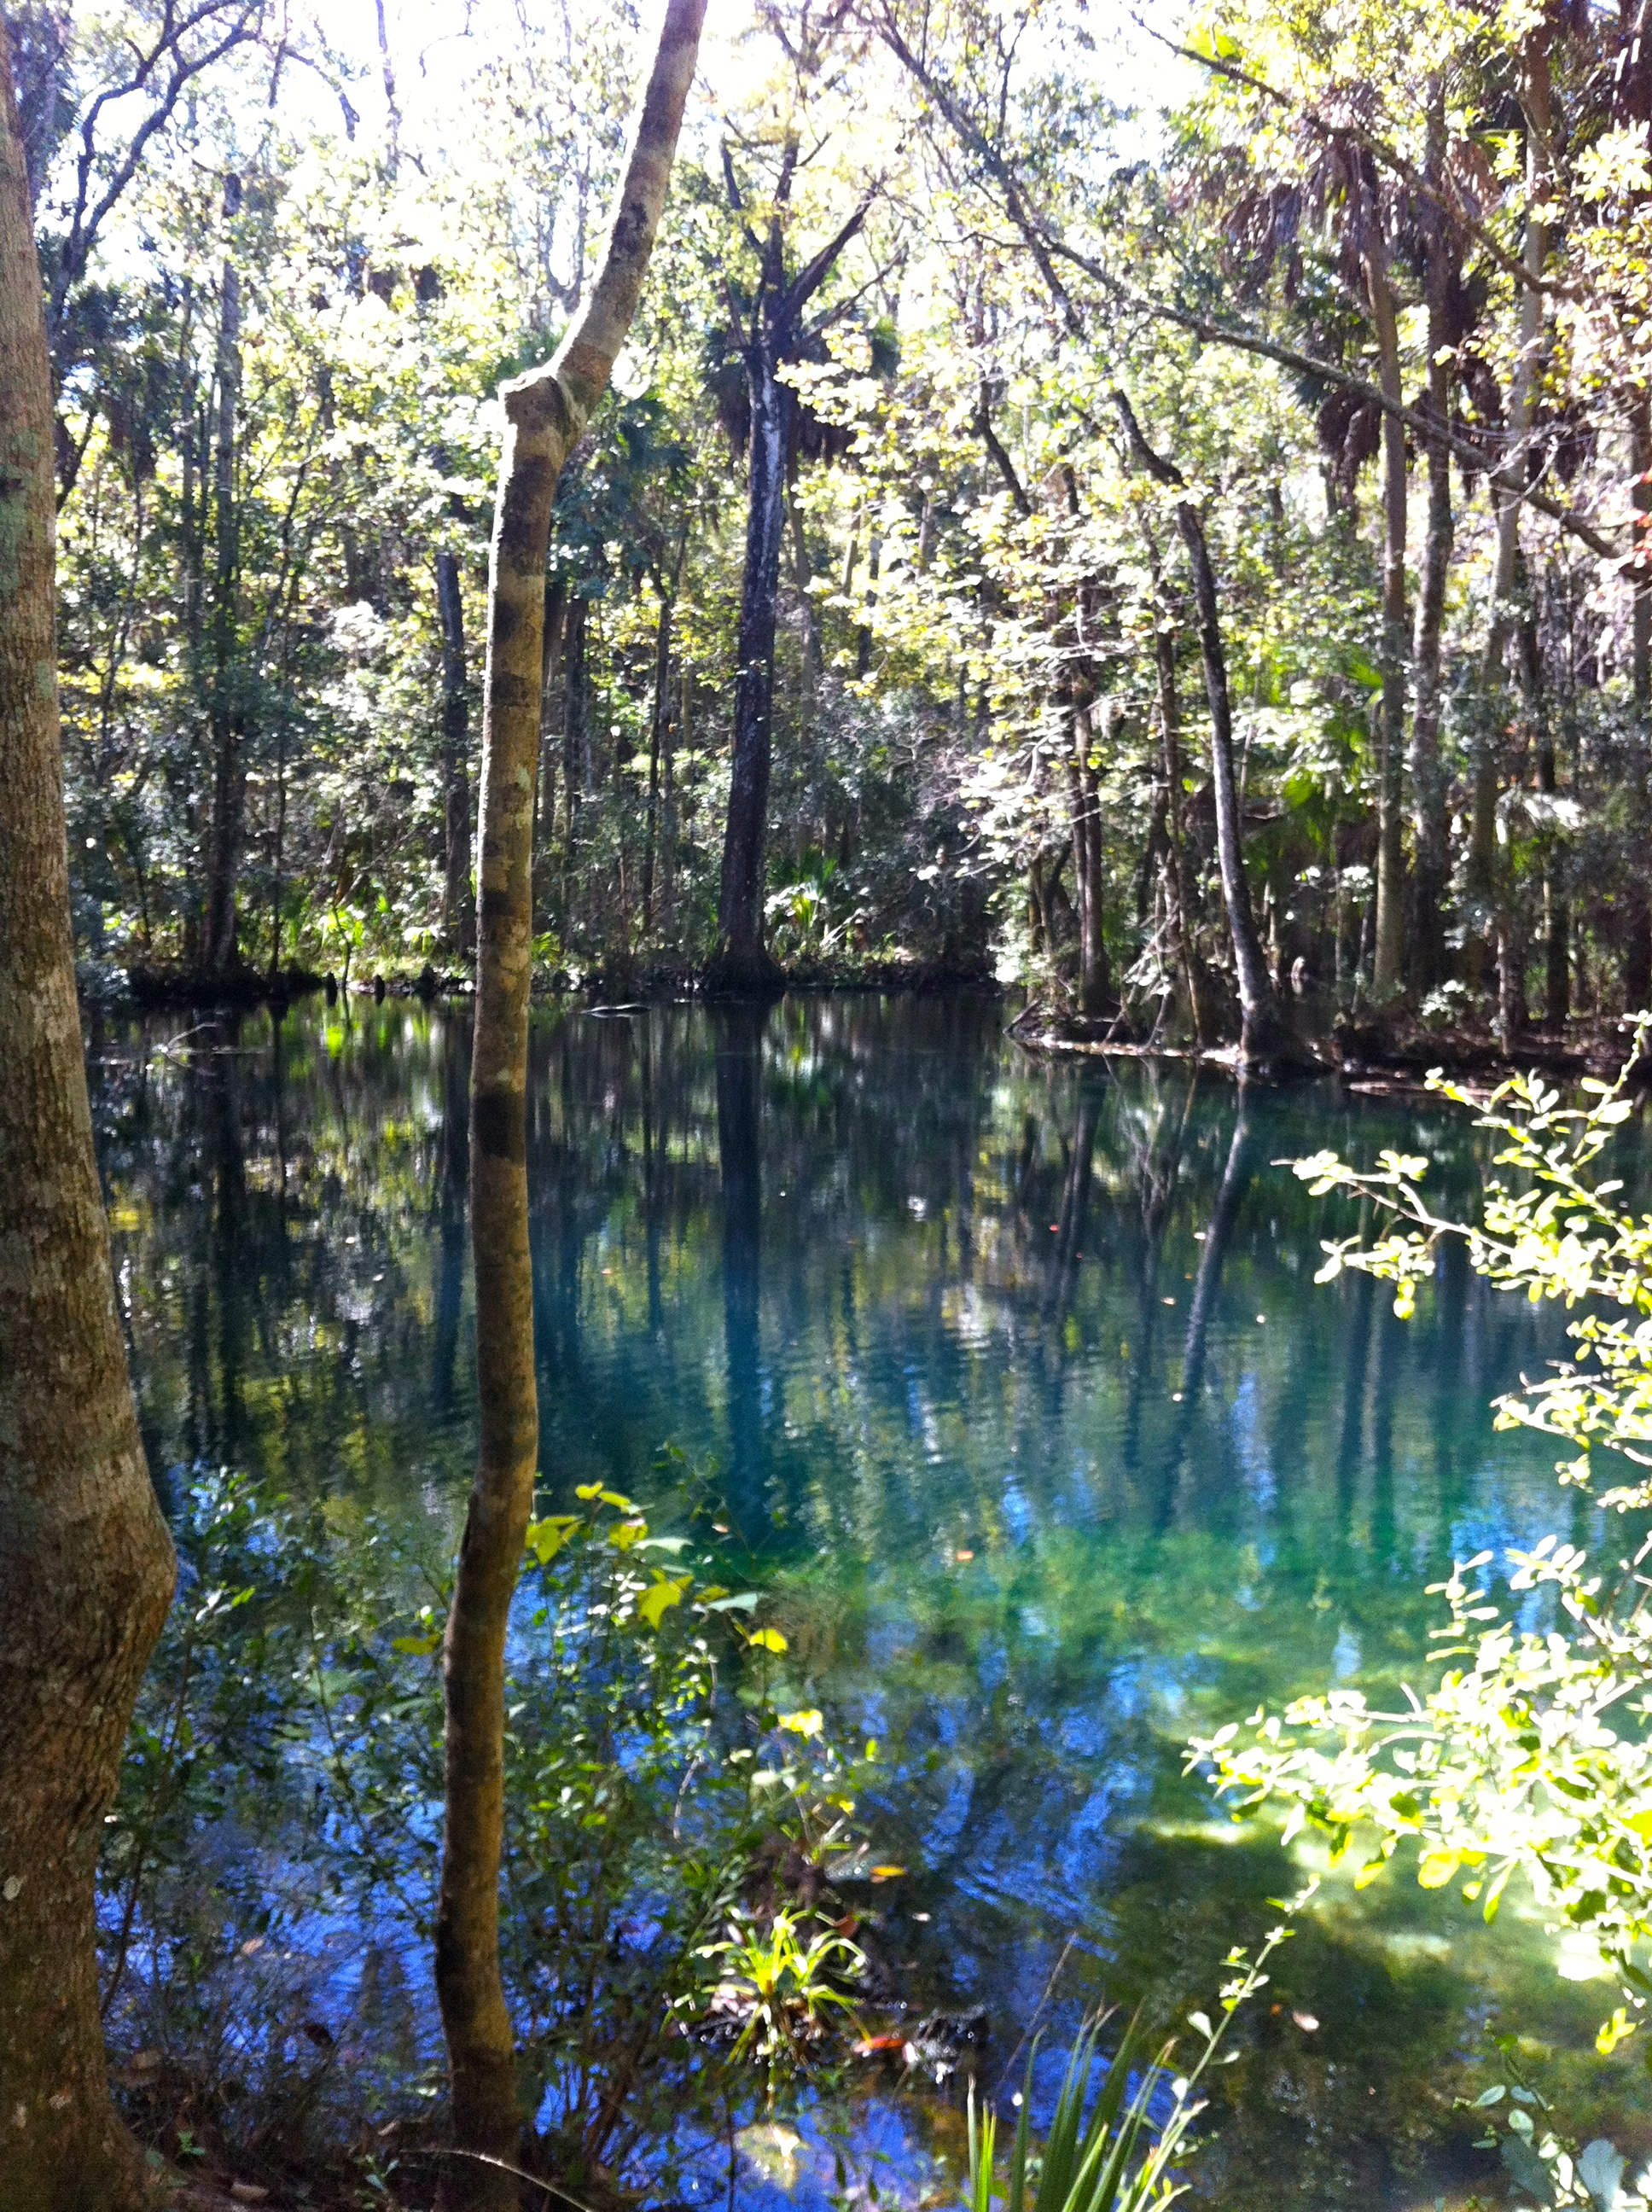 Floridan Aquifer can only handle 6% more pumping before serious environmental harm